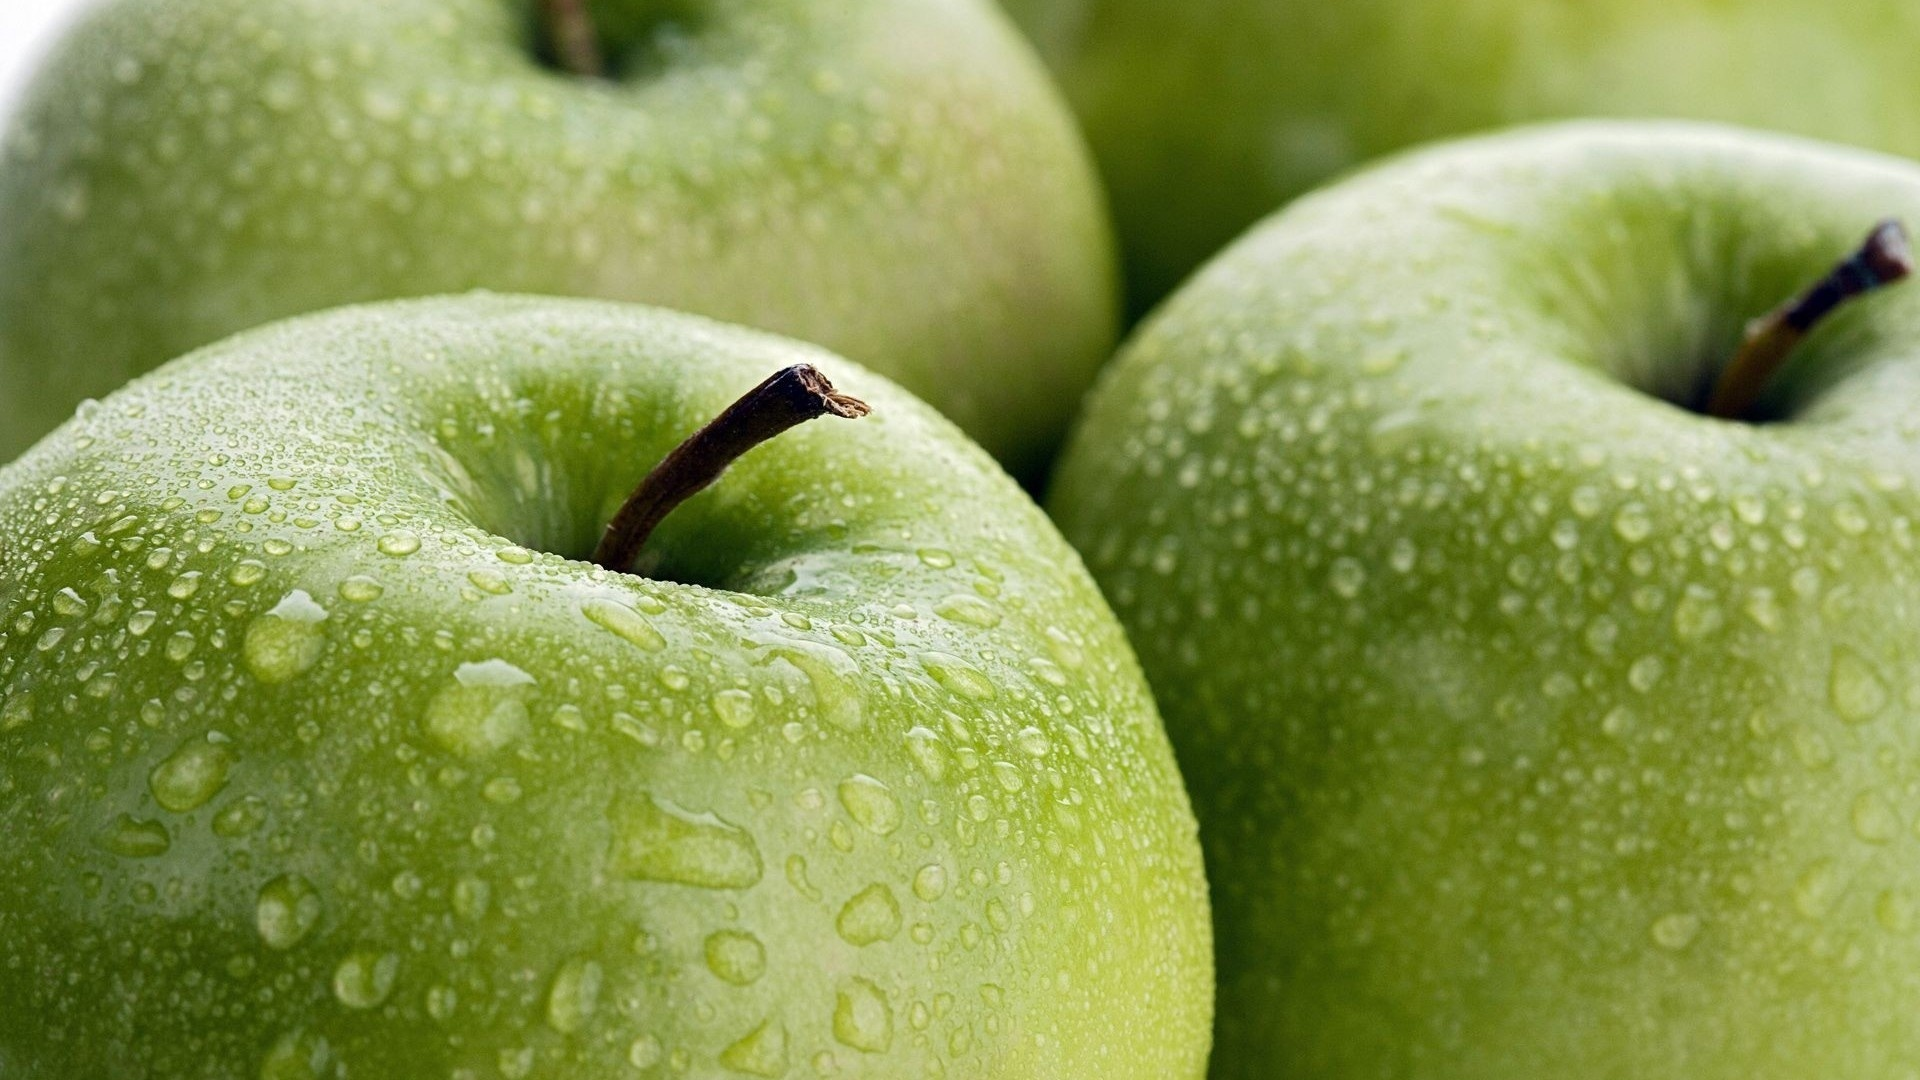 Apple Fruit HD Wallpaper